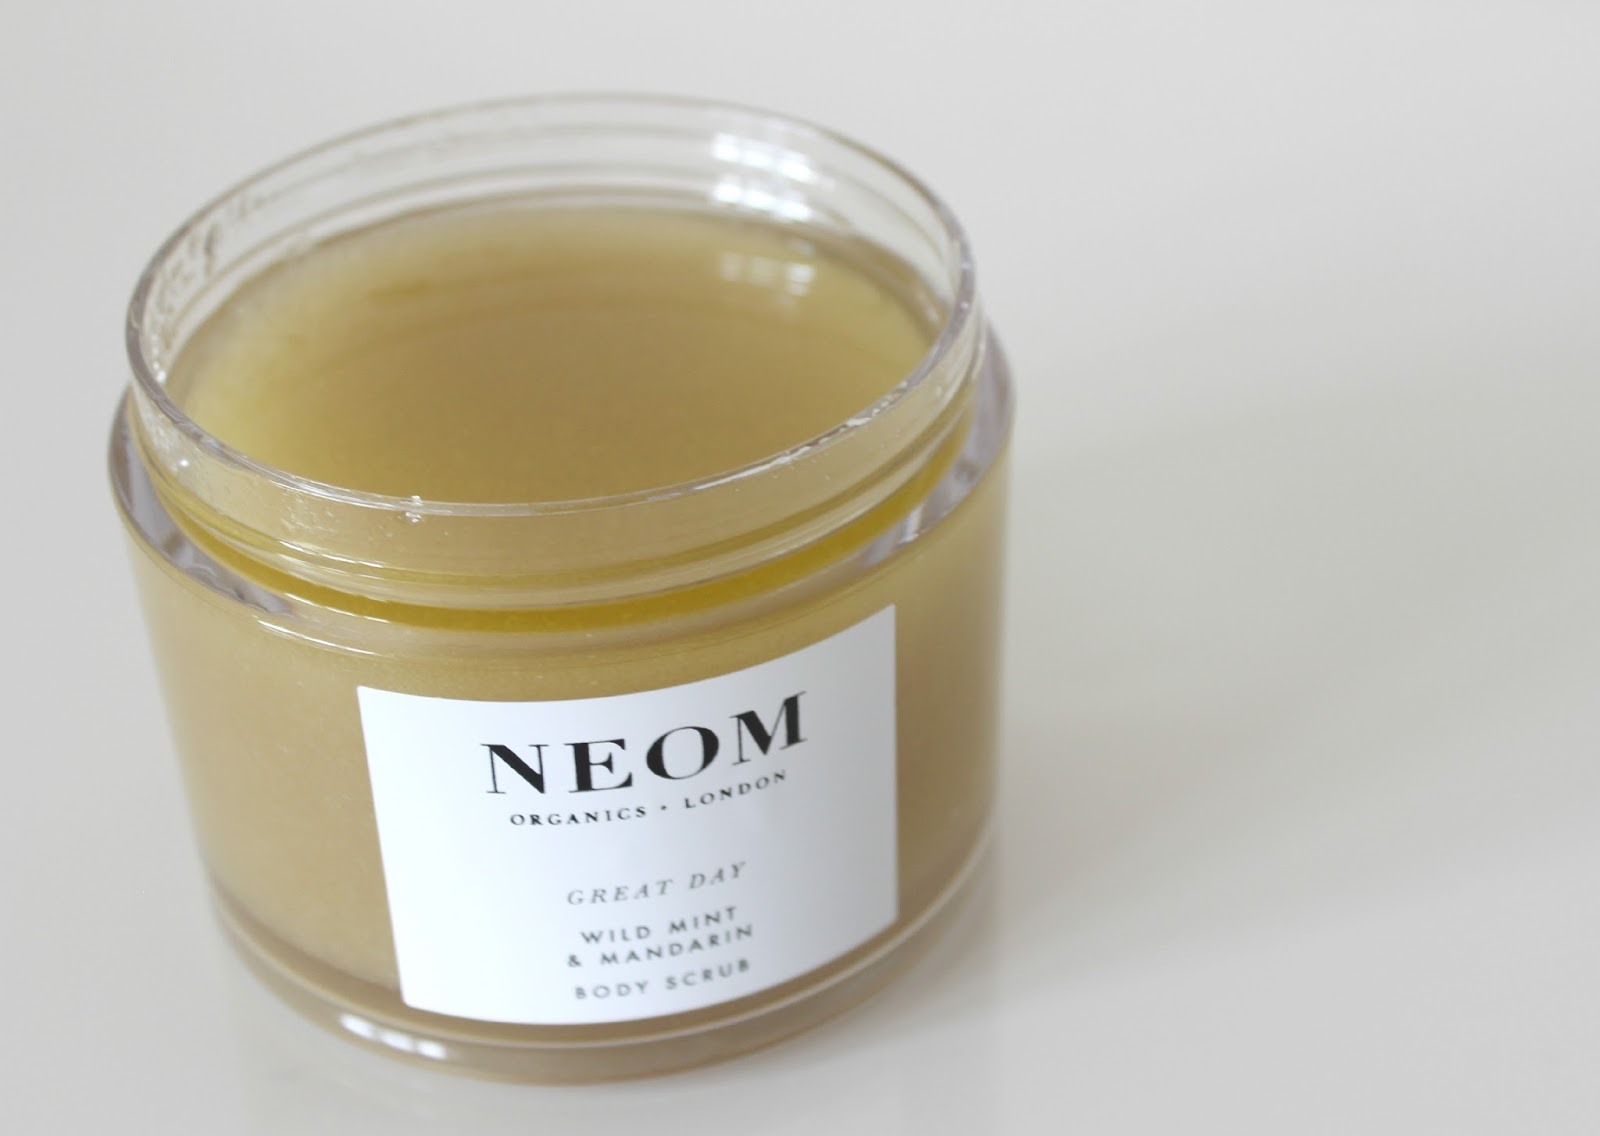 A picture of NEOM Luxury Organic Great Day Body Scrub